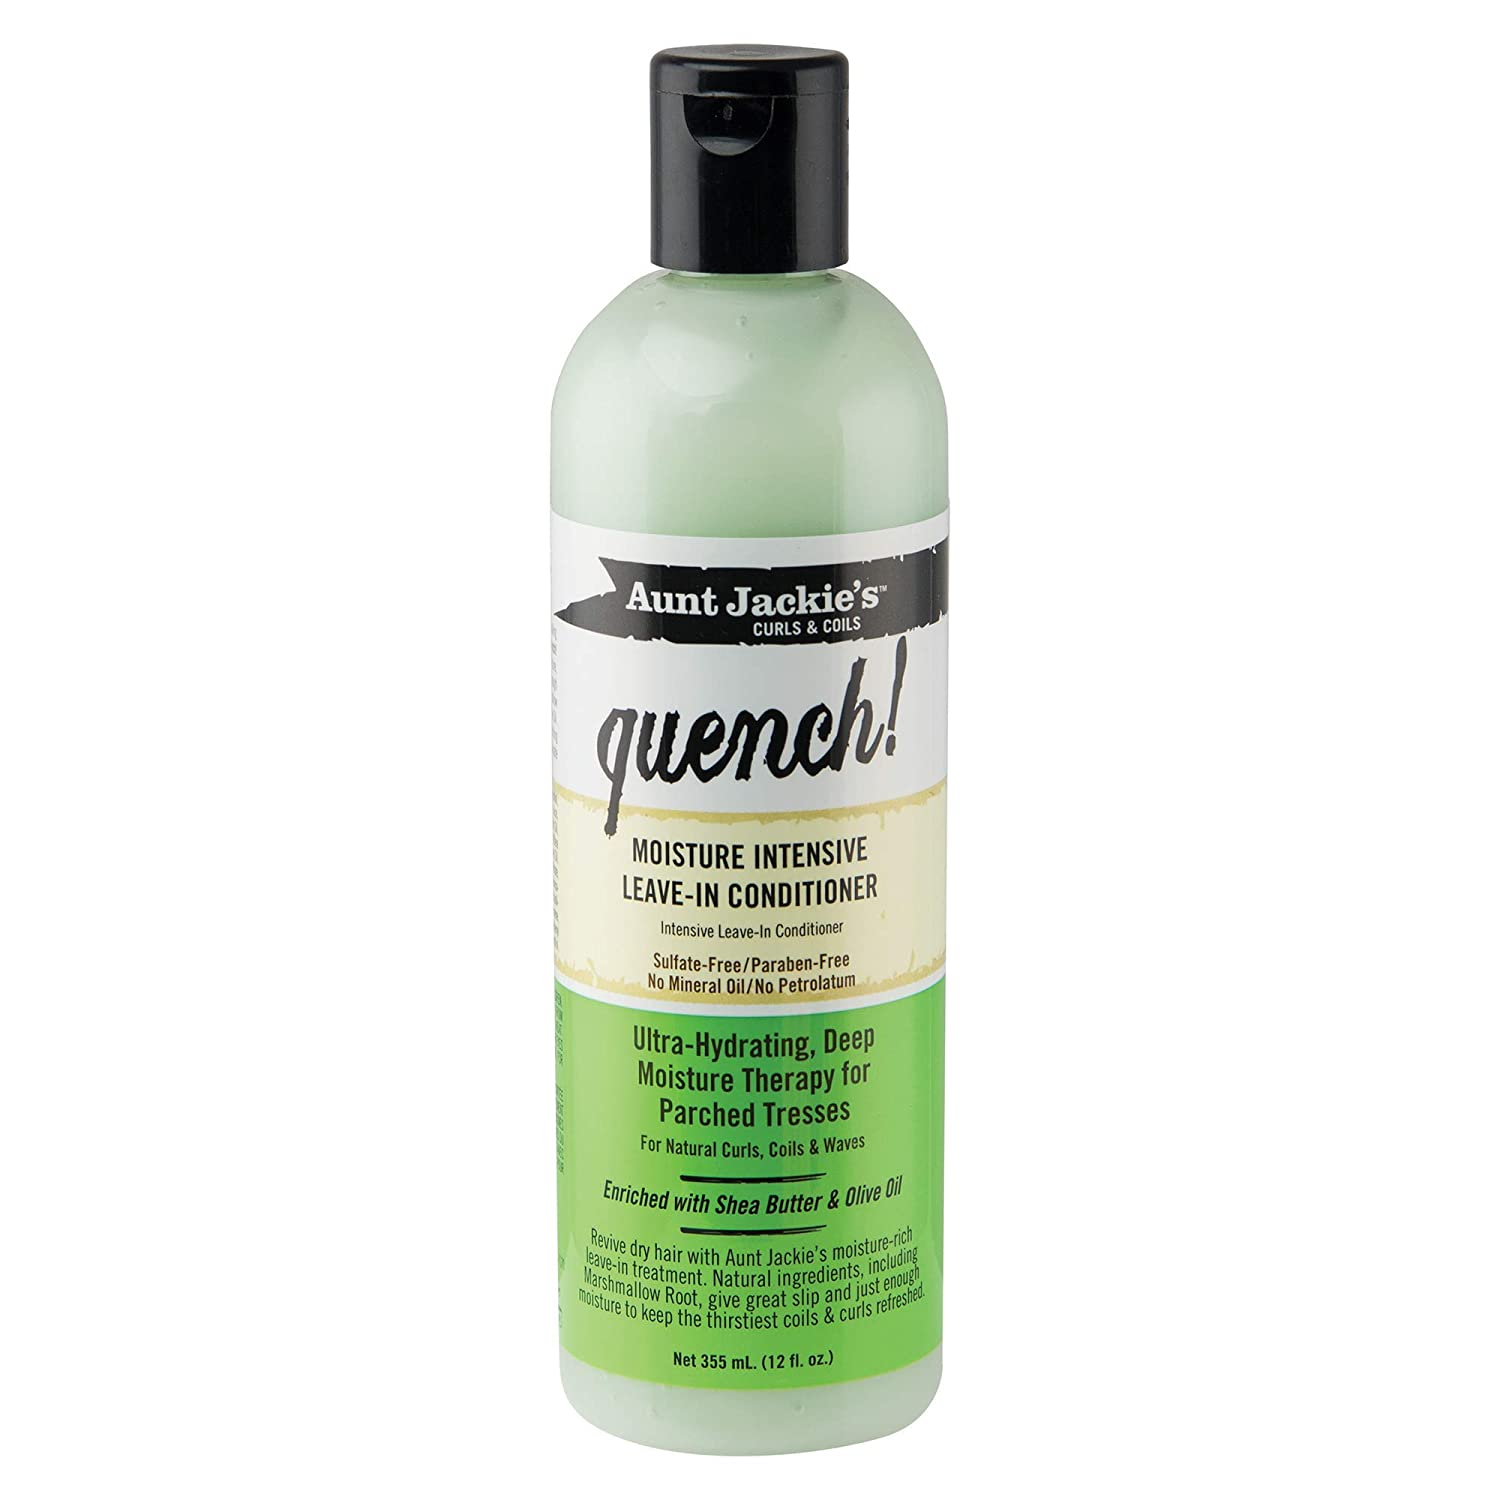 Aunt Jackie's curls and coils QUENCH moisture intensive leave in conditioner